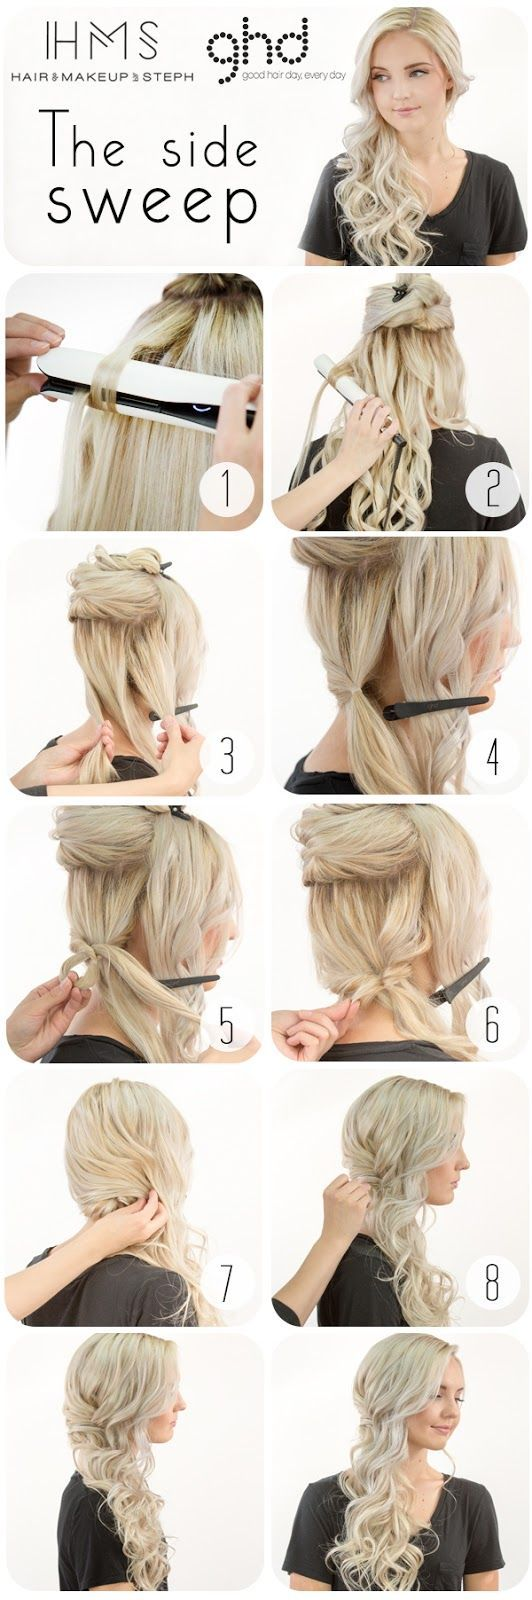 How To: Bridal Side Swept Hair (Hair and Make-up by Steph) | Side ...